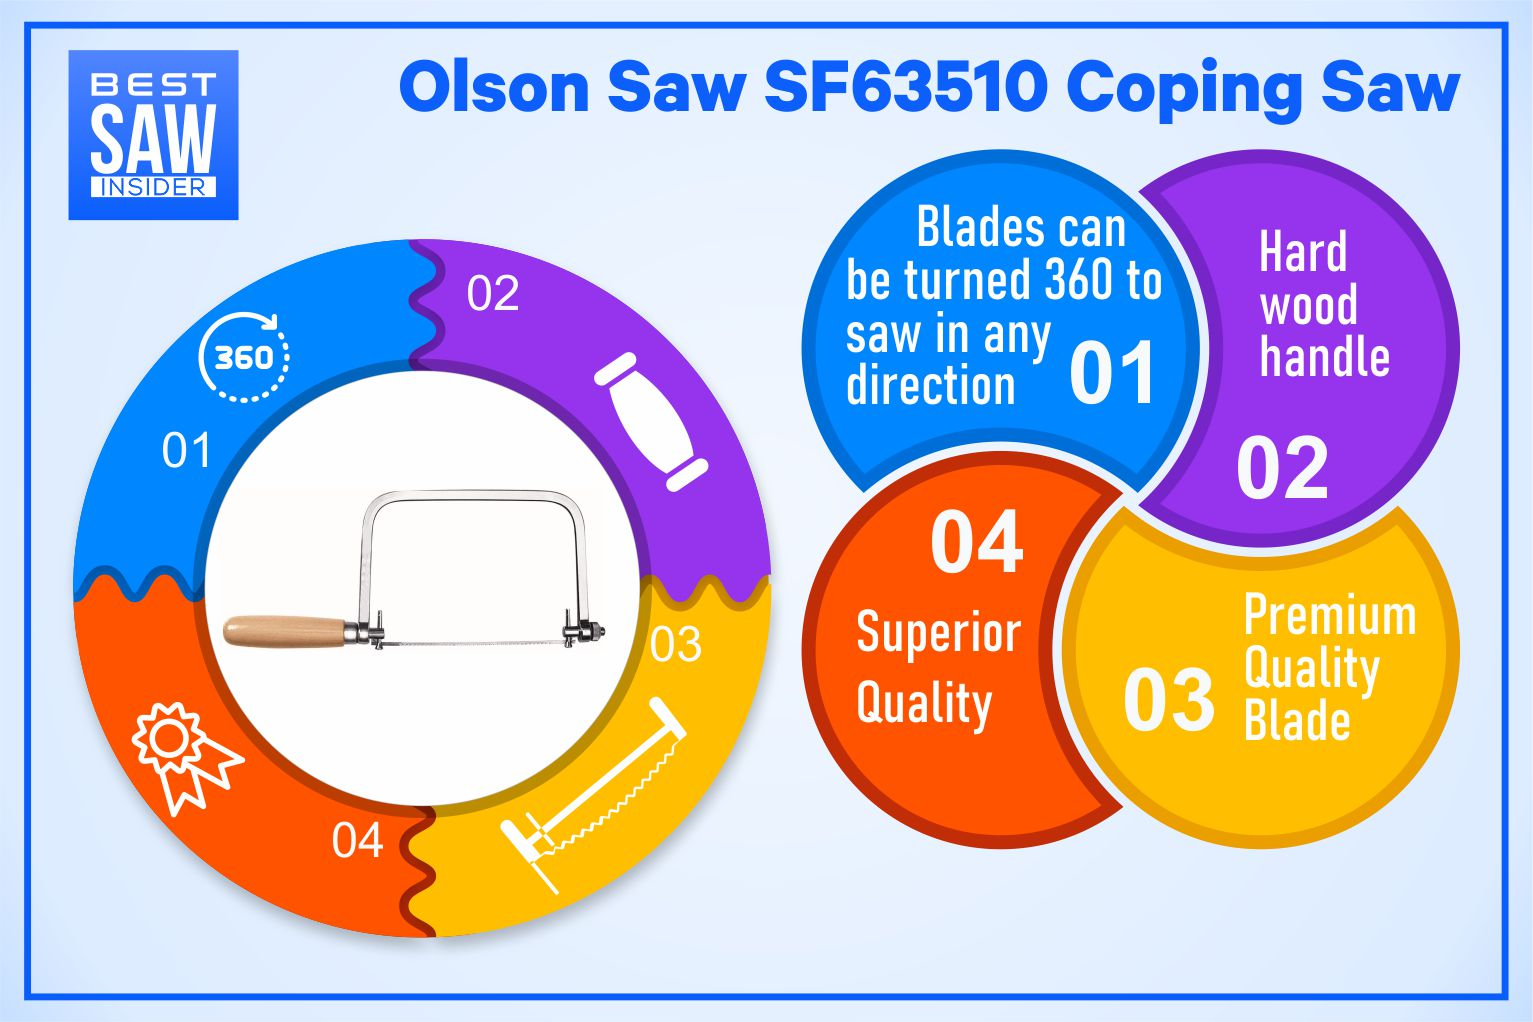 Olson Saw SF63510 Coping Saw infographic